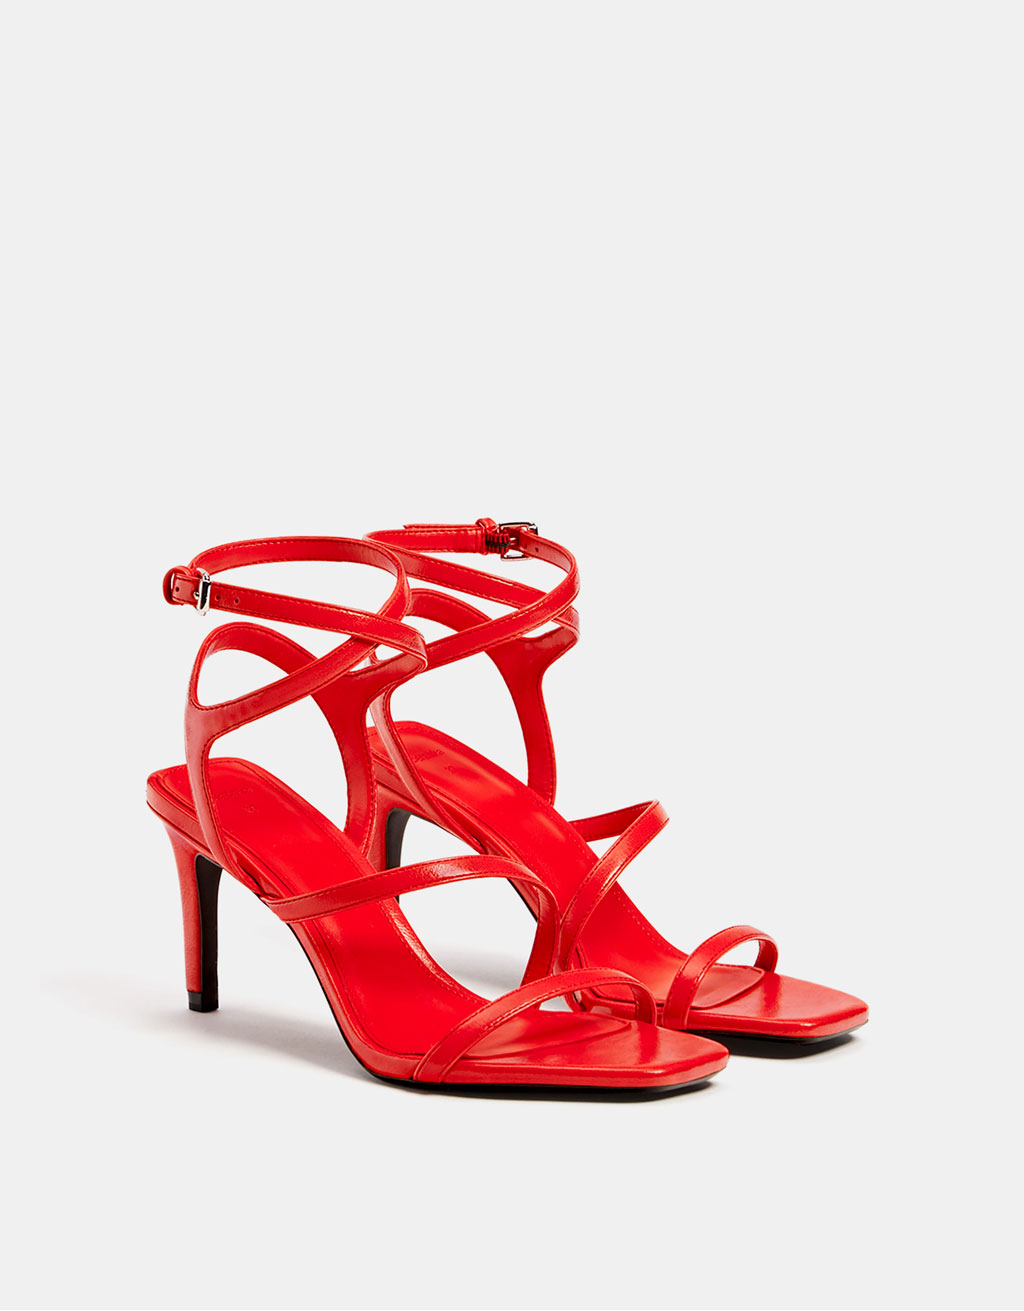 High-heeled sandal with straps